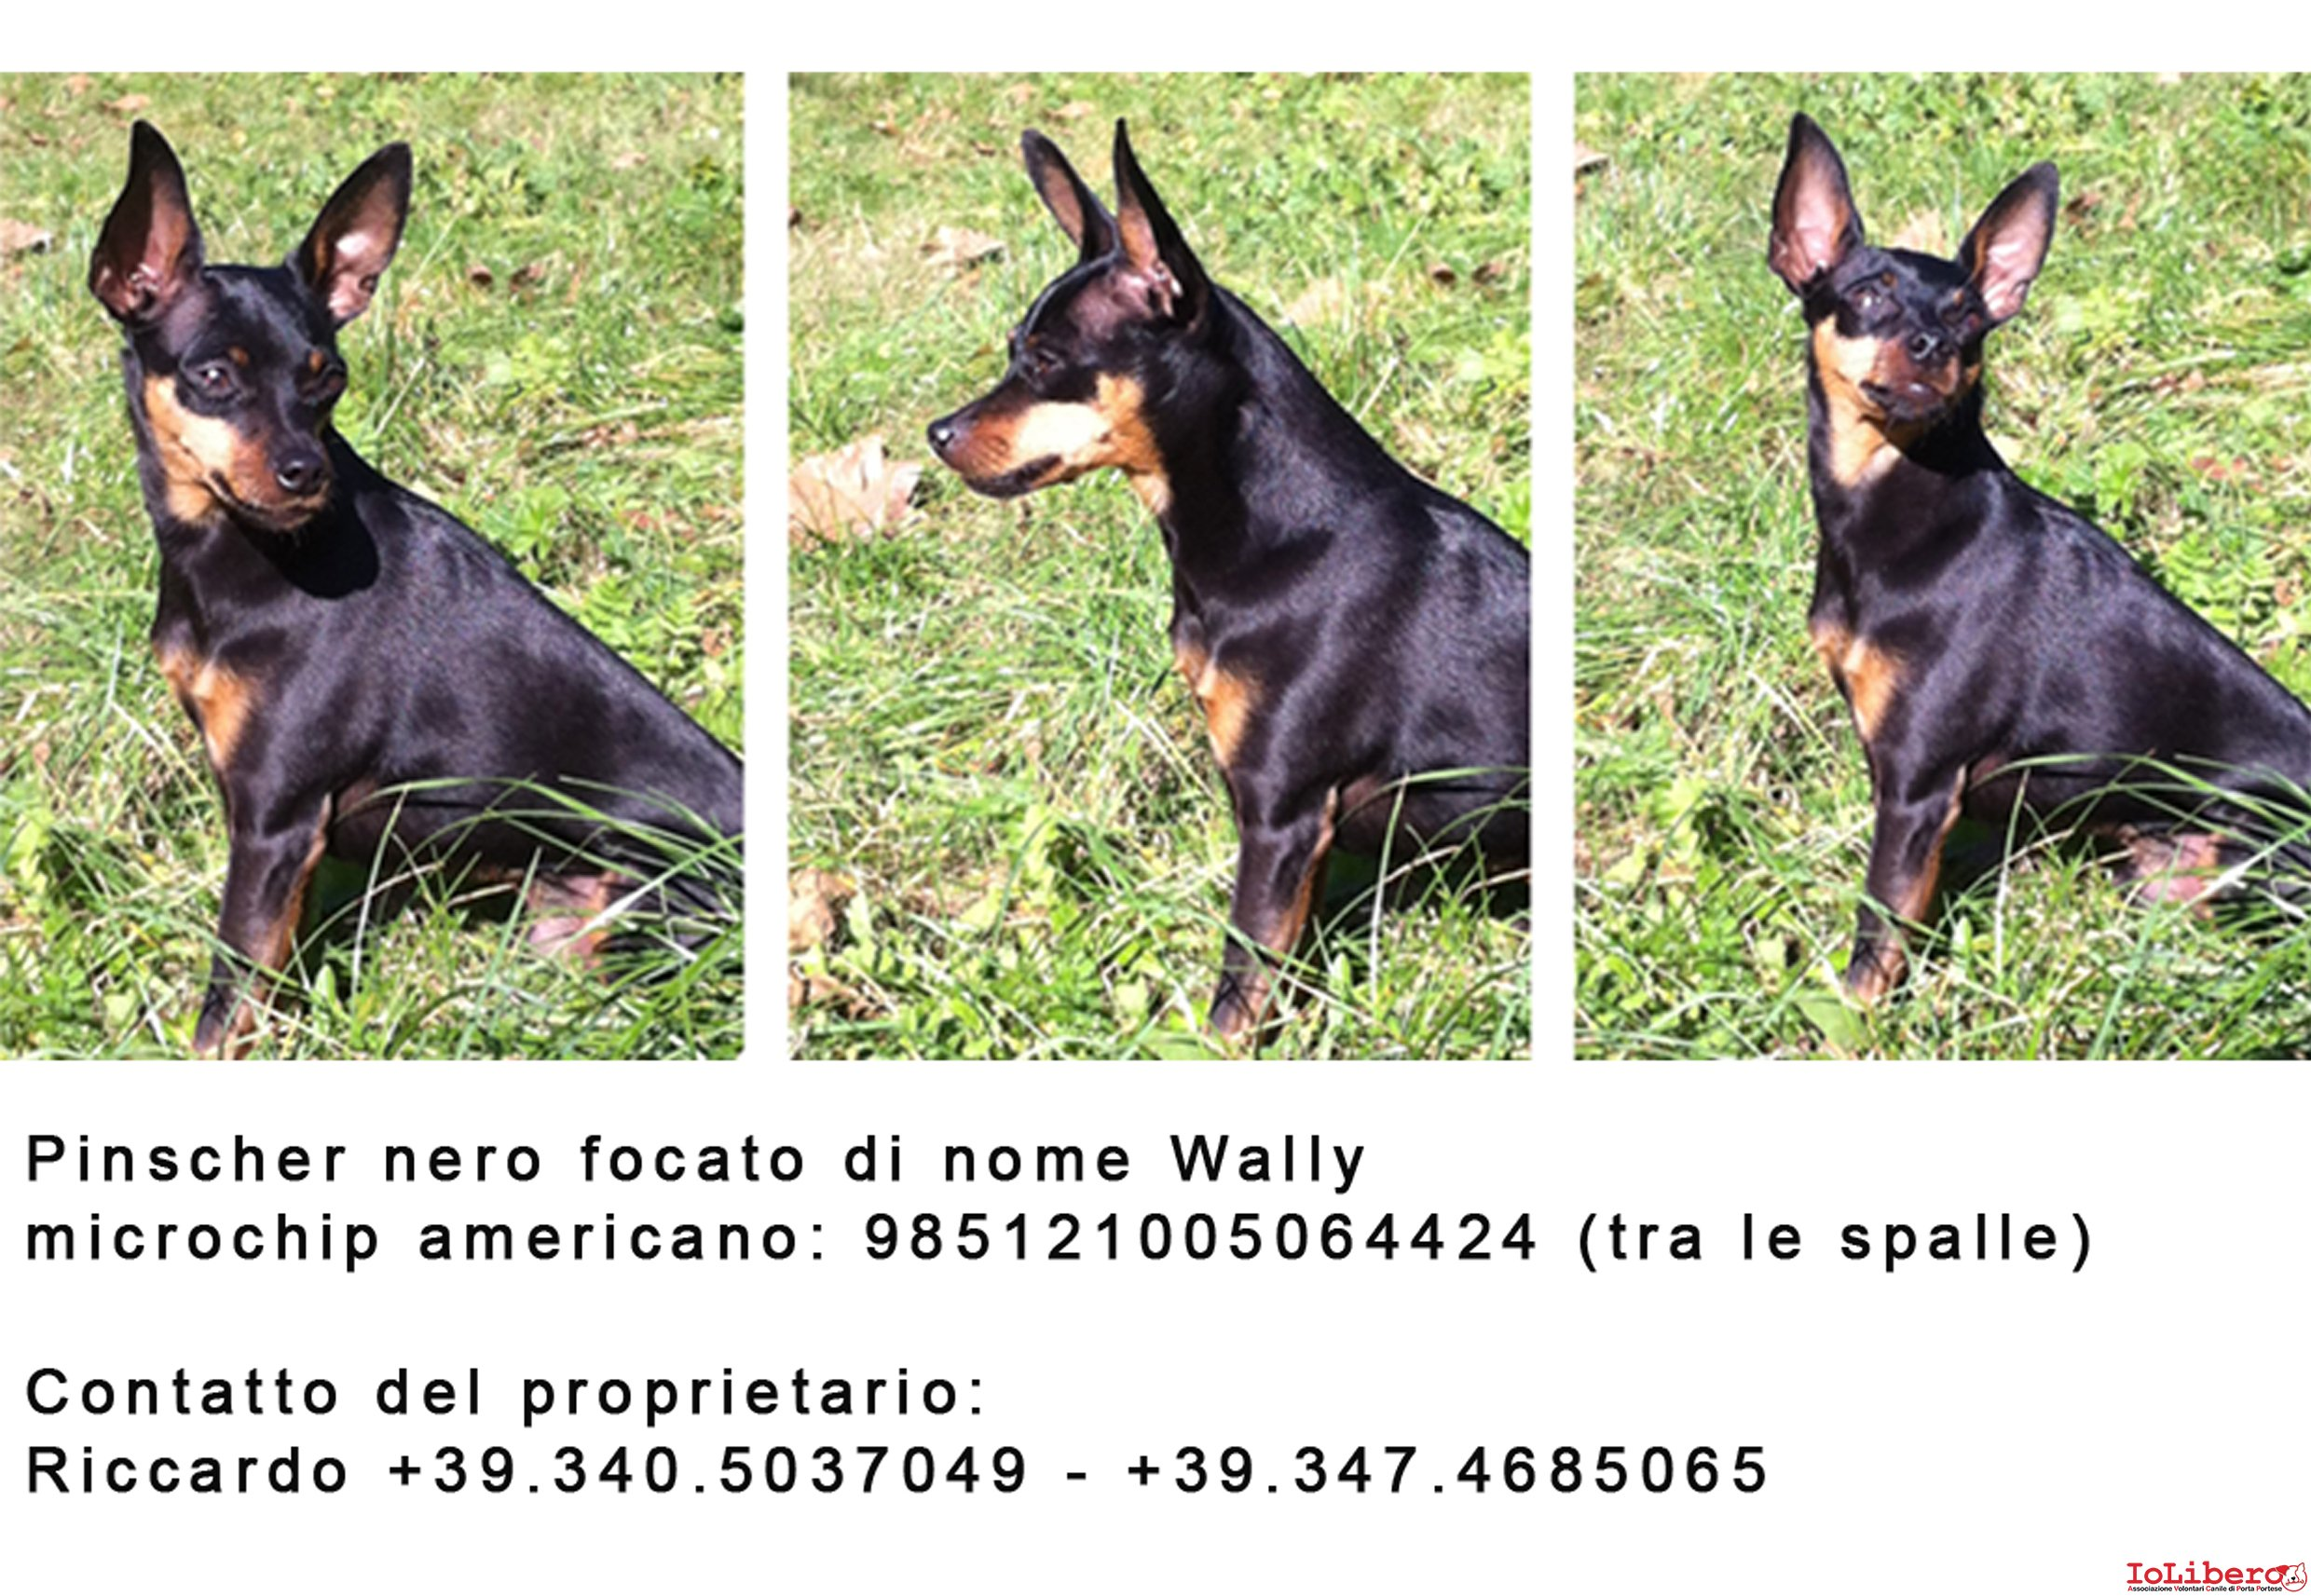 RITROVATO! 08/02/2014 Smarrito, Wally, cane pinscher. No ...